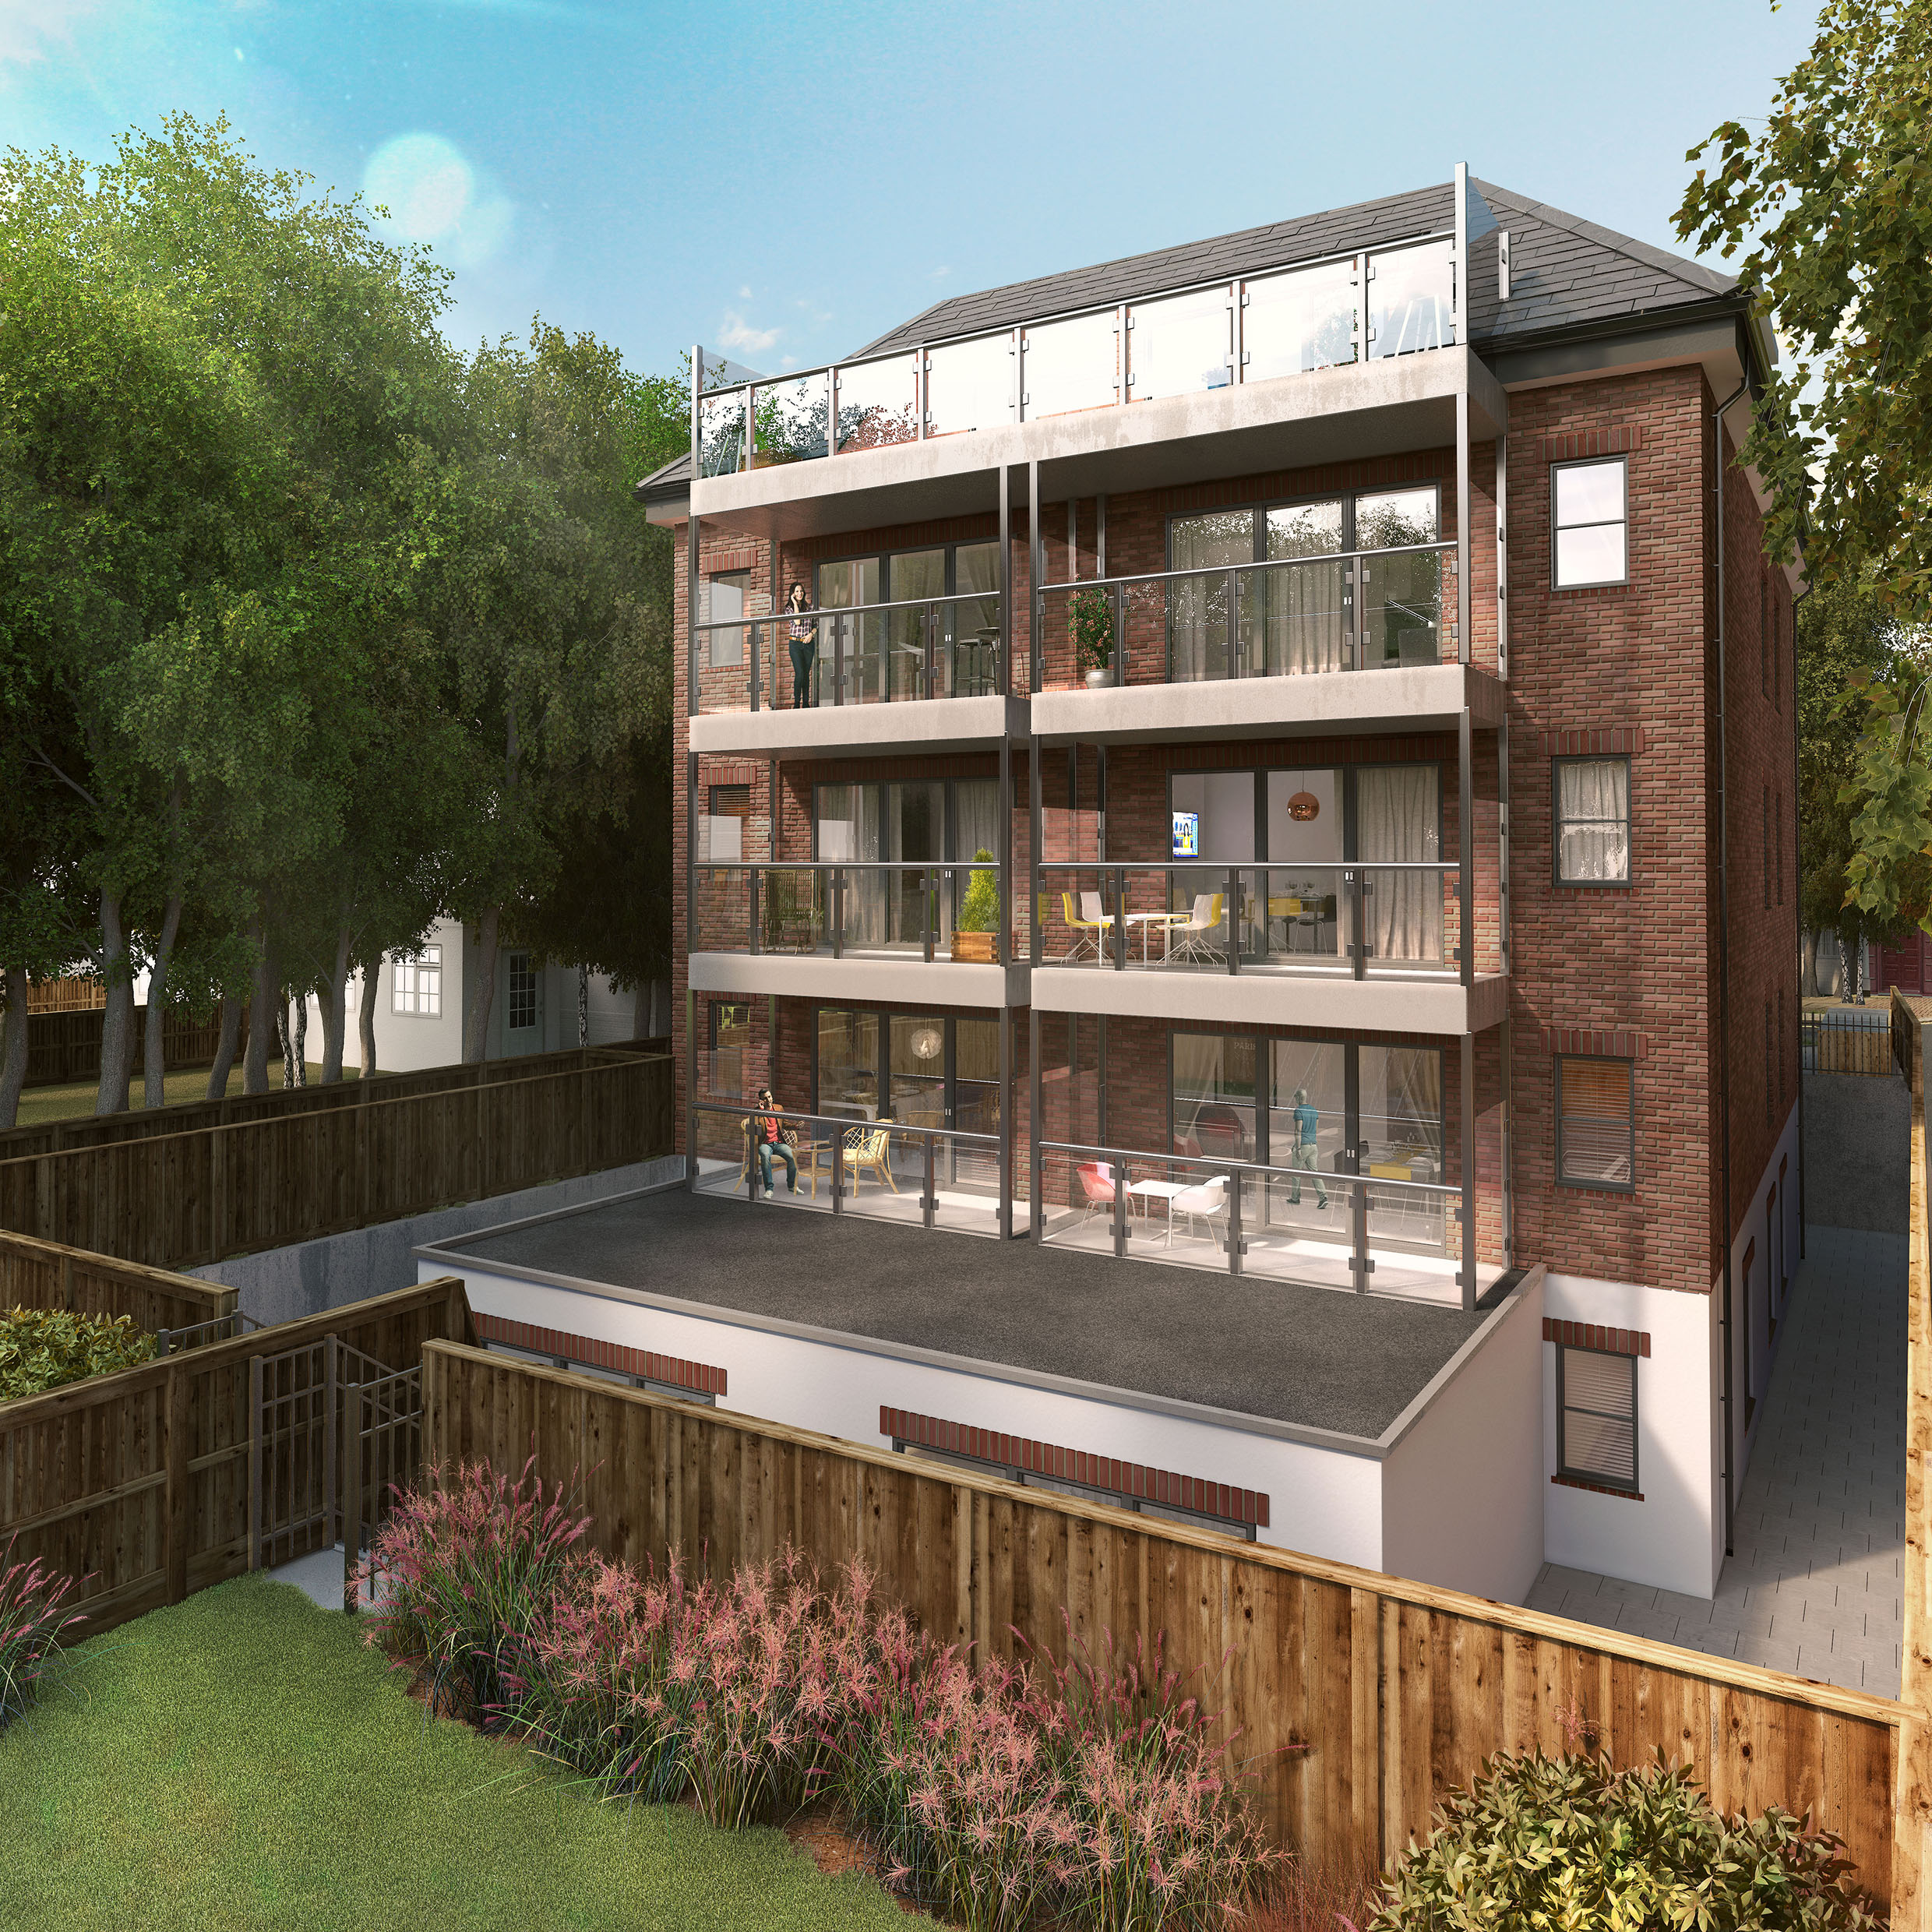 TEN FONTENOY, BALHAM - OUR LATEST LUXURY DEVELOPMENT